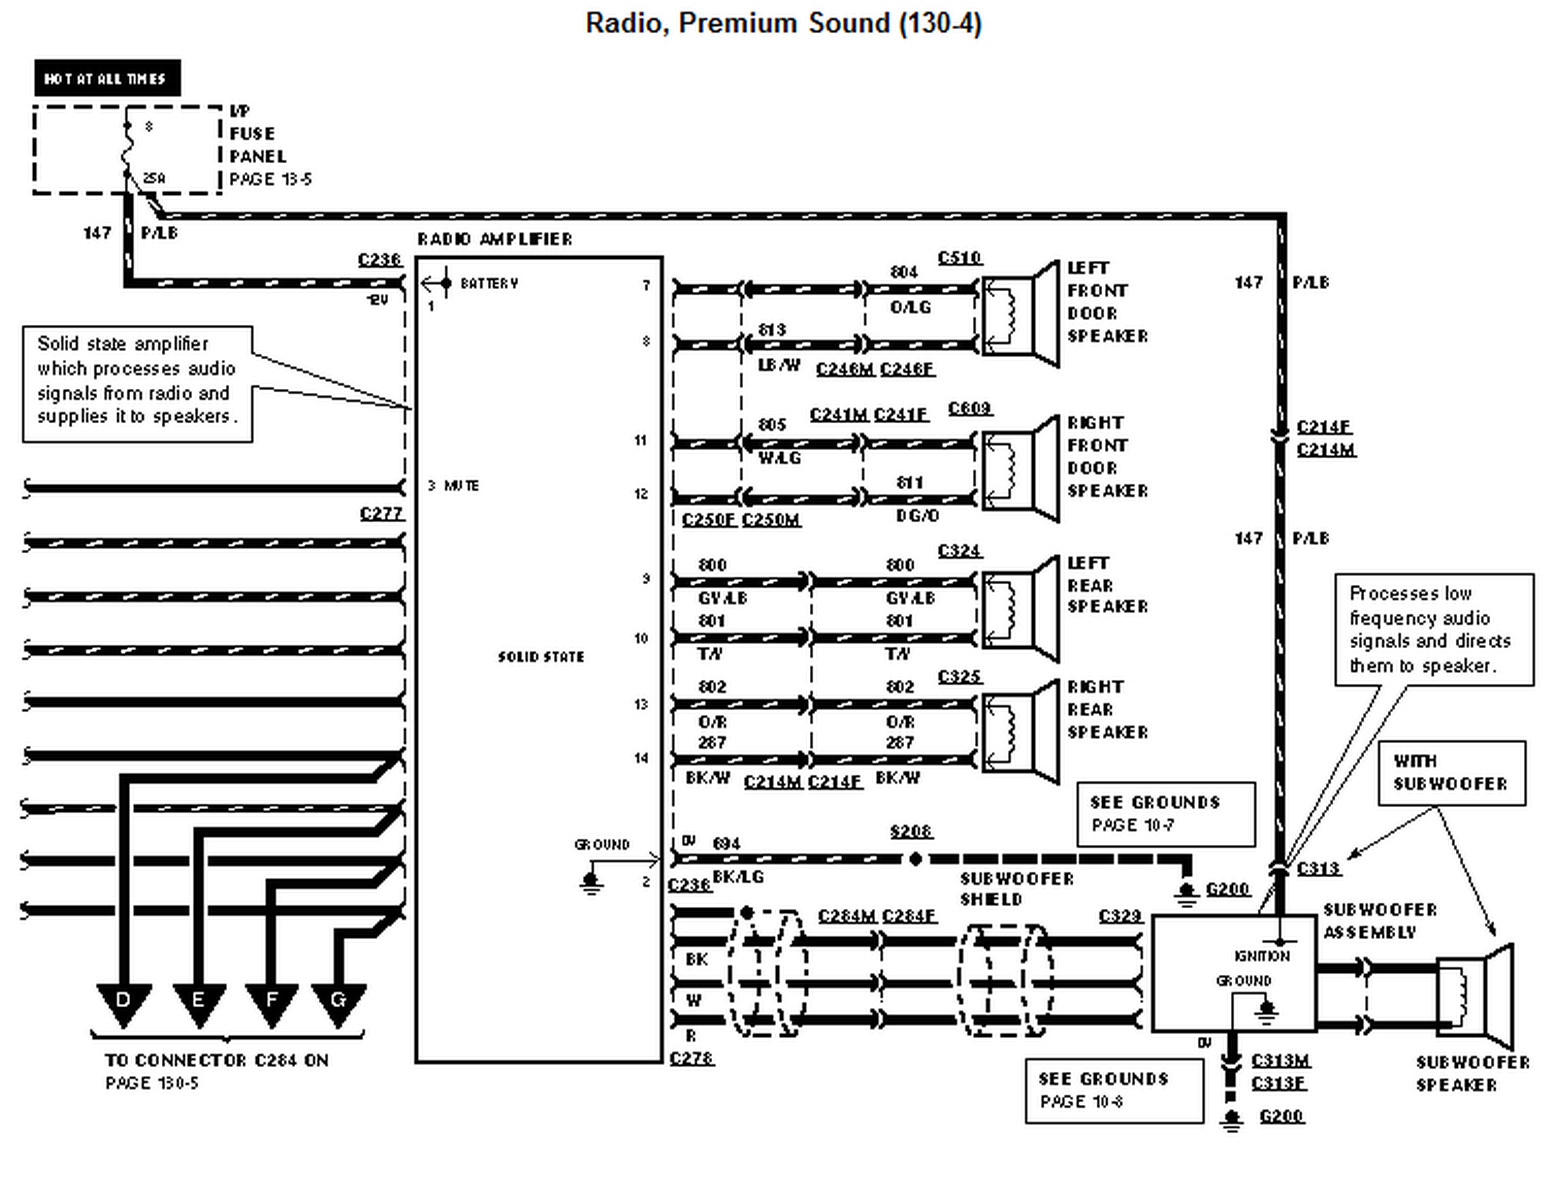 2000 Ford F150 Radio Wiring Diagram from schemacache.com